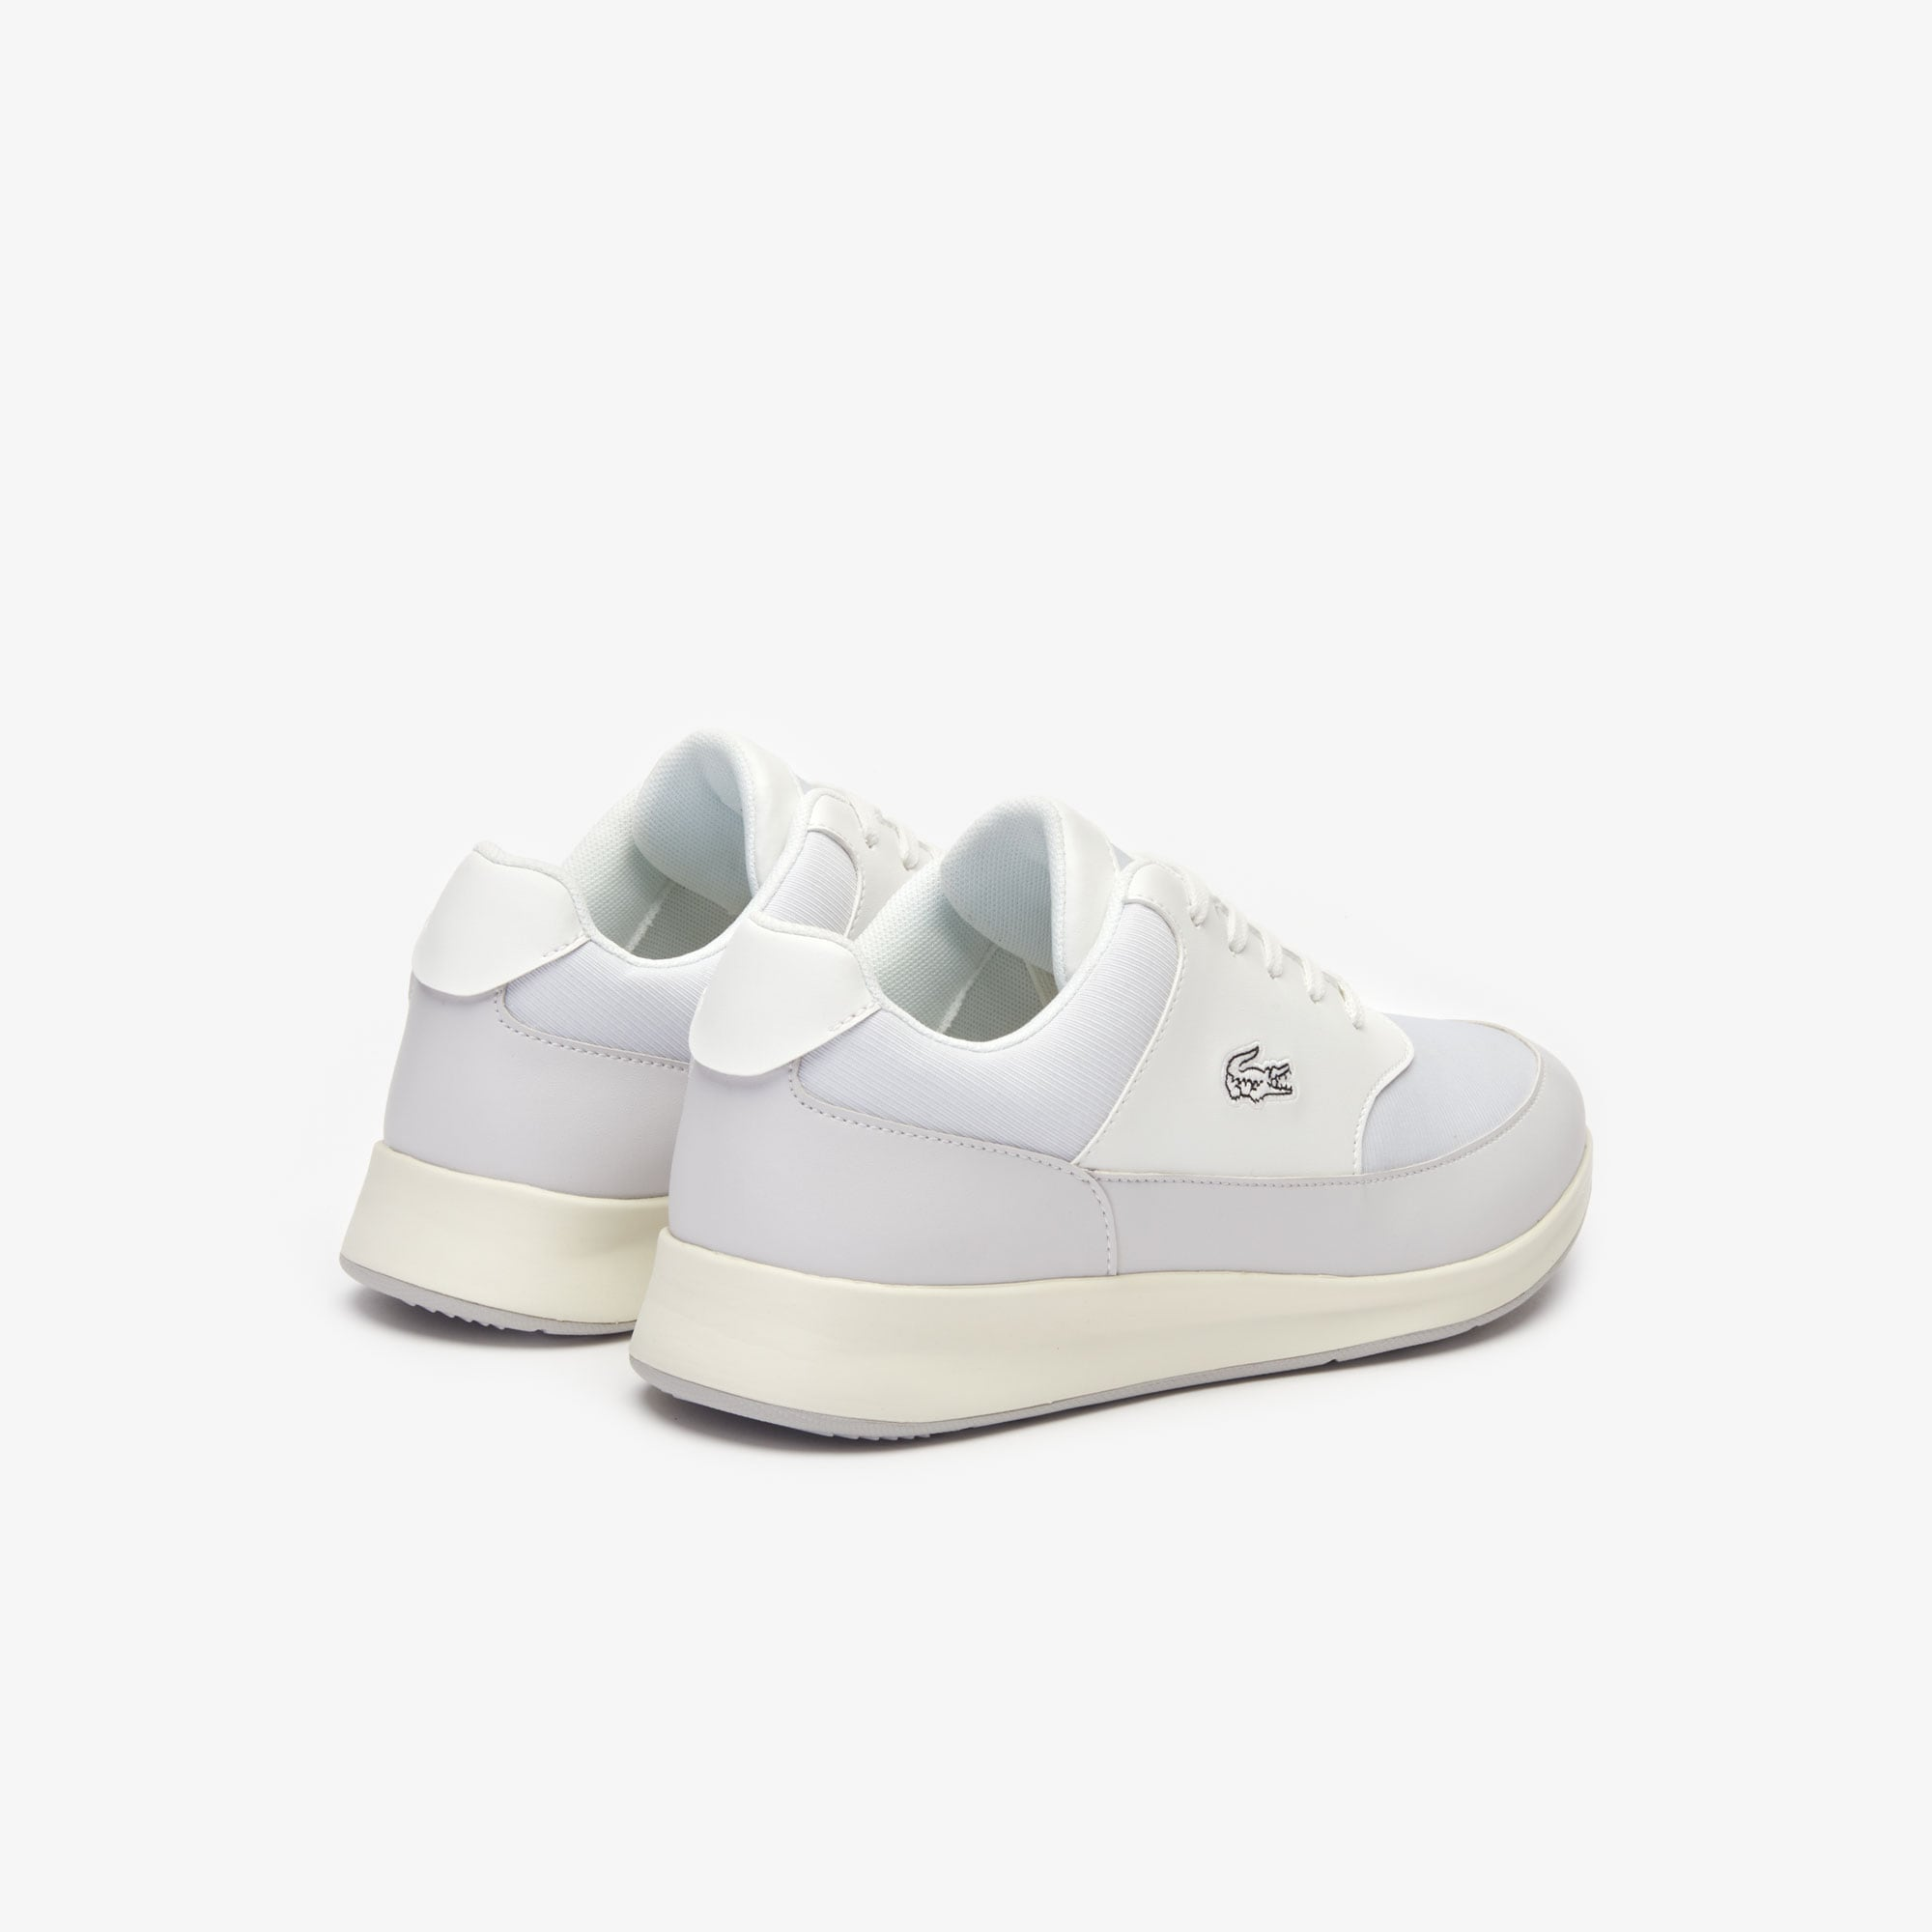 Women's Chaumont Textile Trainers